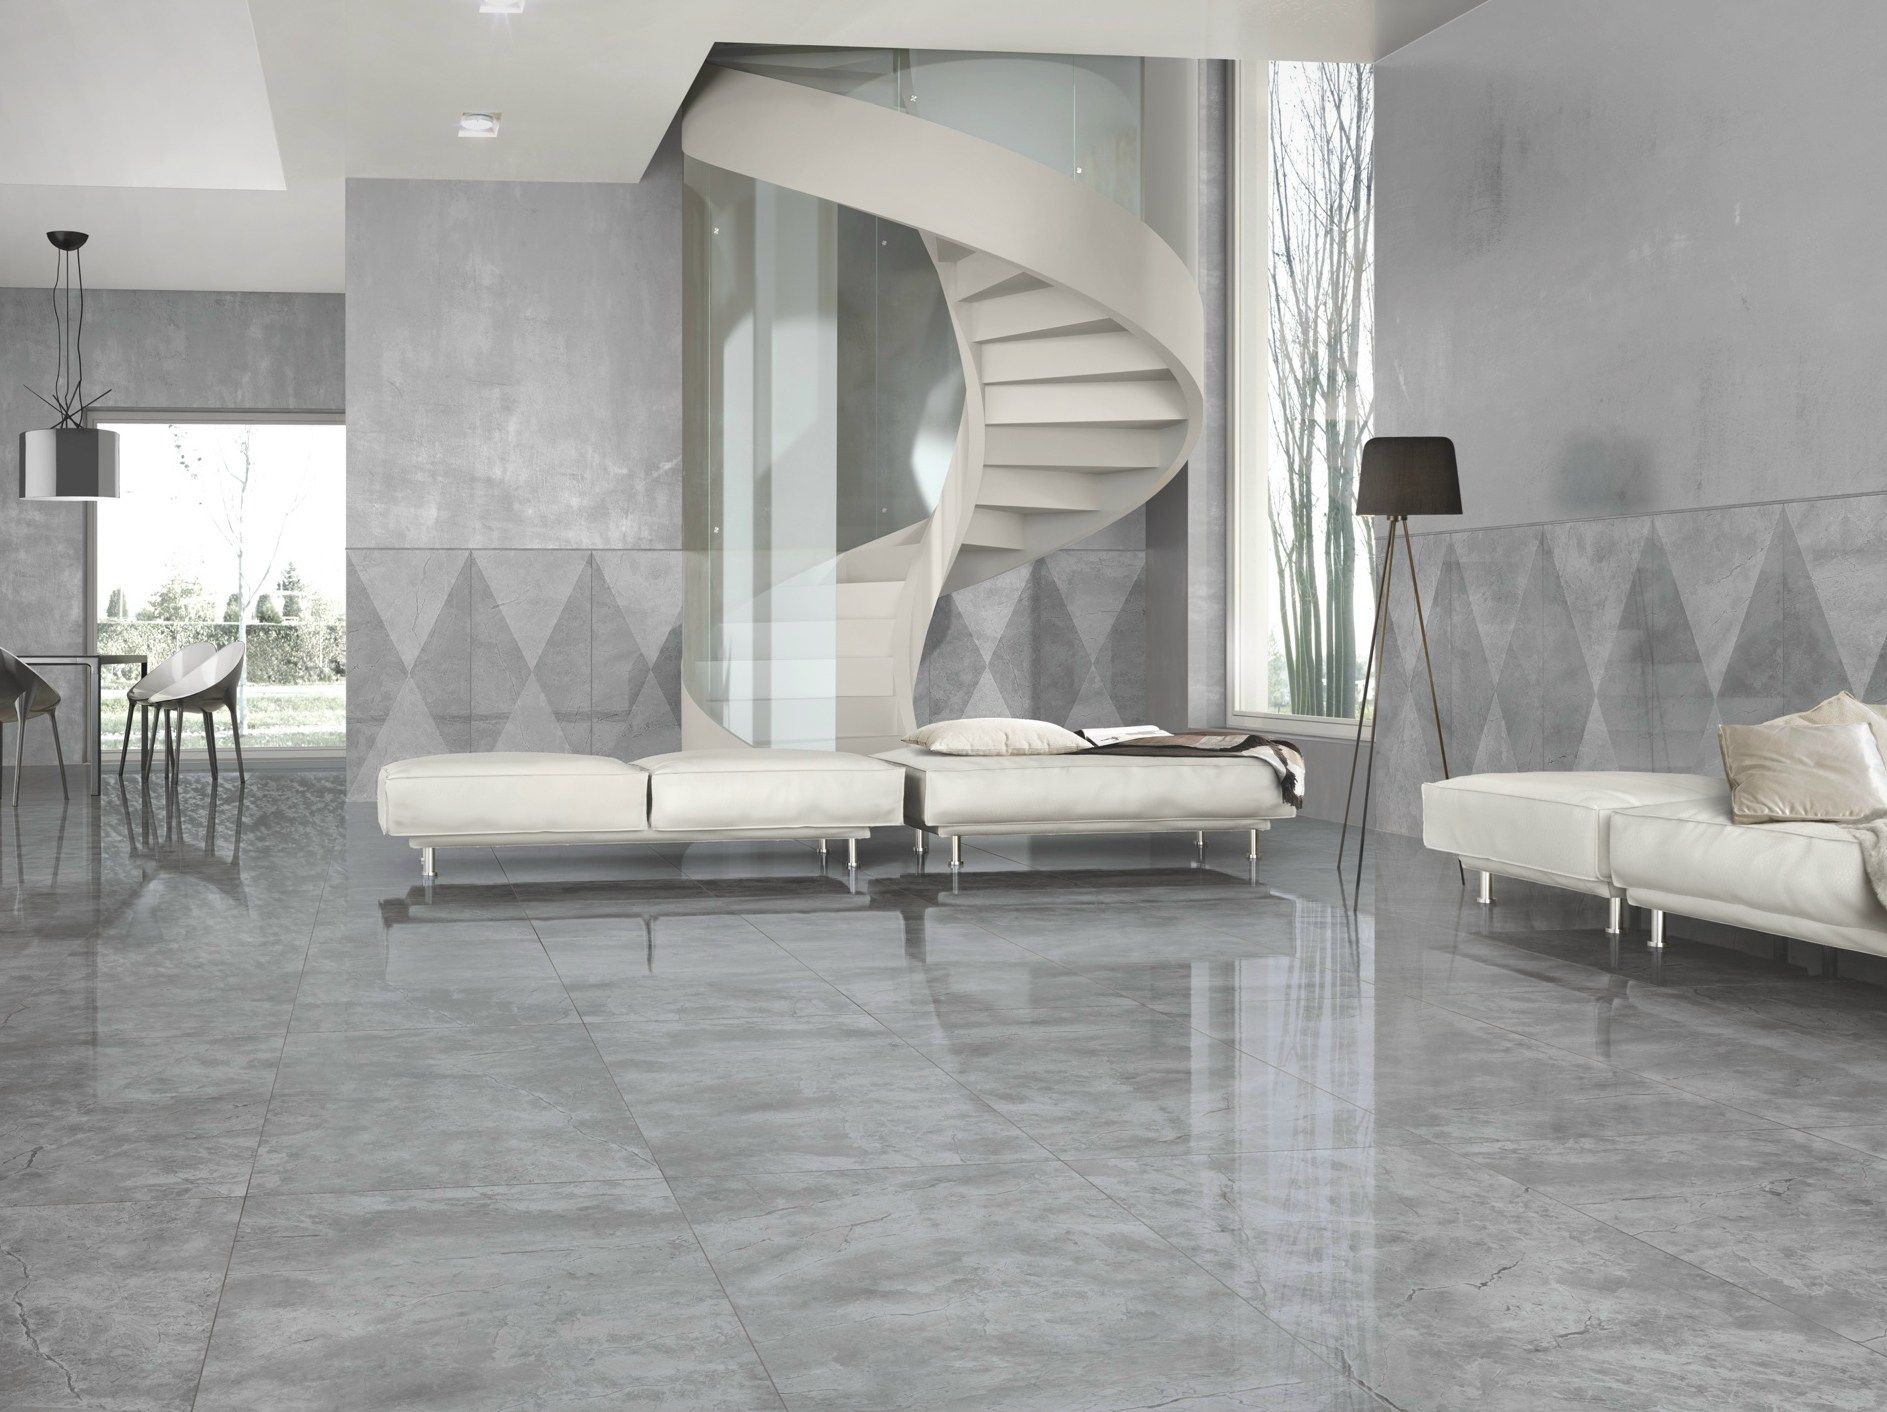 Porcelain stoneware wallfloor tiles with marble effect marmoker porcelain stoneware wallfloor tiles with marble effect marmoker by casalgrande padana doublecrazyfo Choice Image